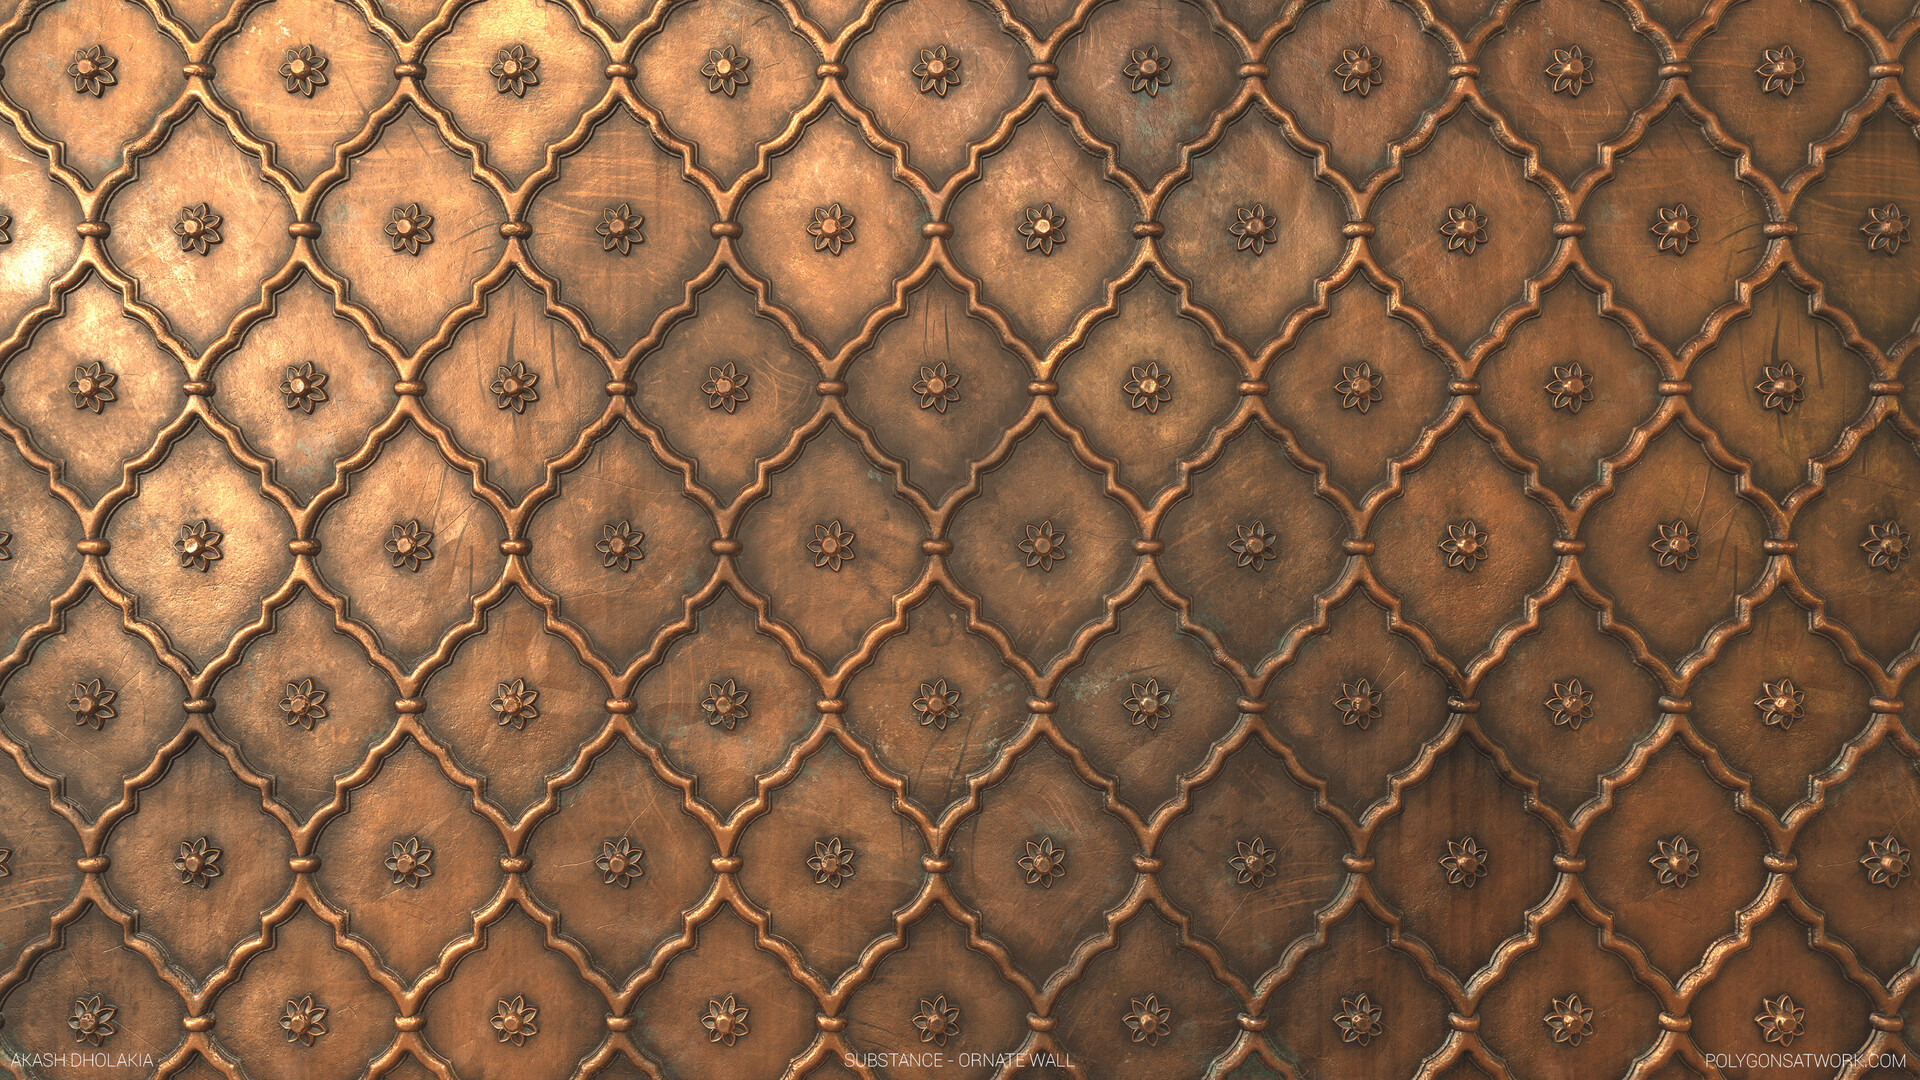 Worn Copper Ornate Door Material.